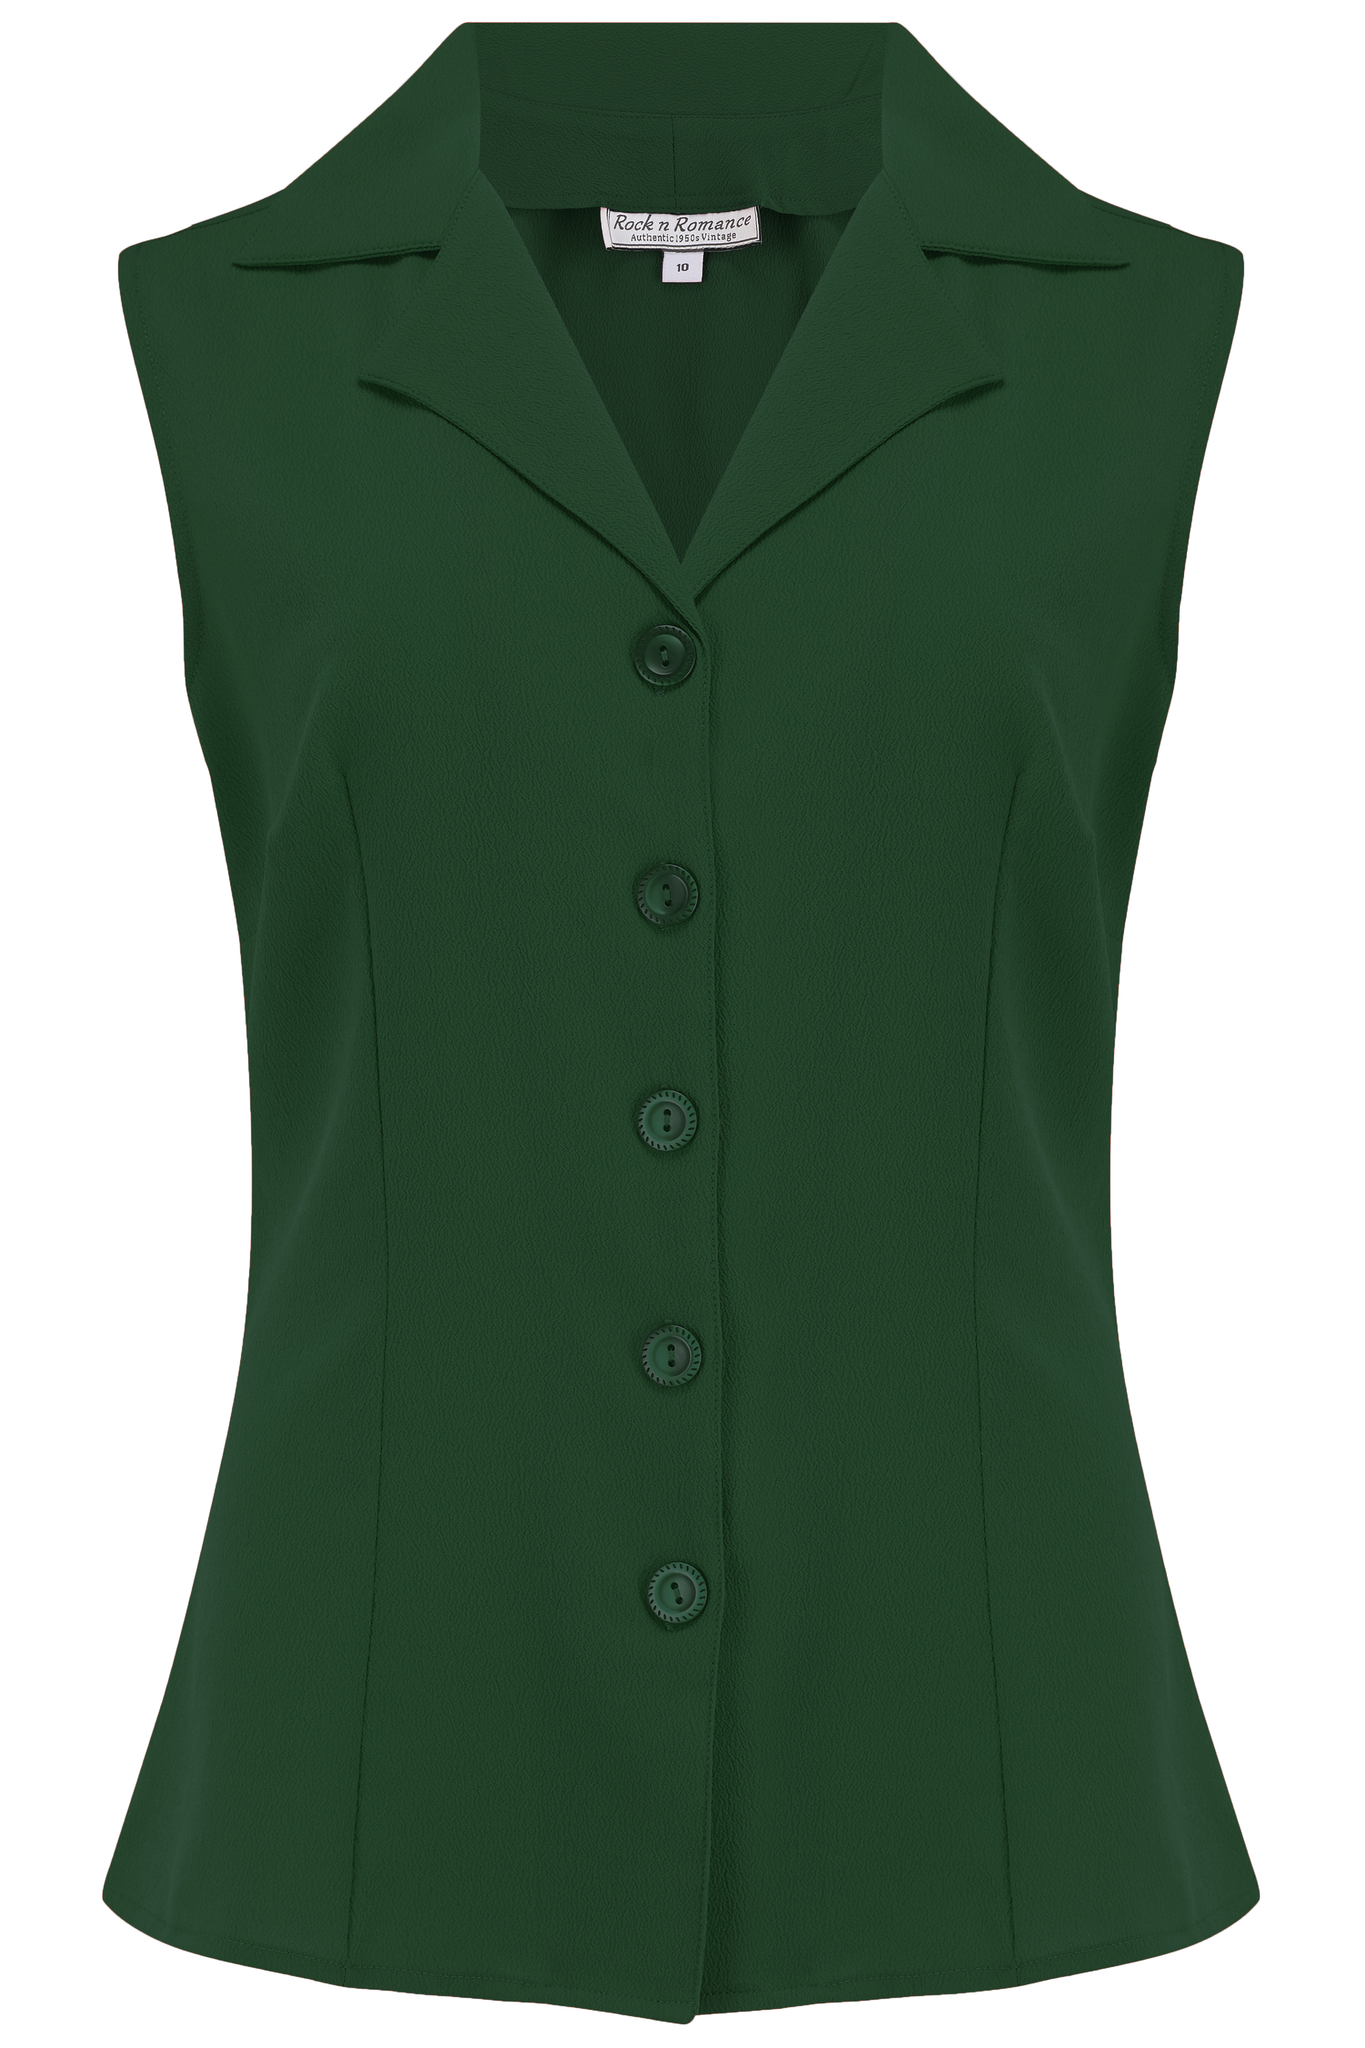 "Rock n Romance **Sample Sale** The ""Gladys"" Sleeveless Summer Blouse in Solid Green, Classic Vintage 1950s Inspired Style - RocknRomance Clothing"